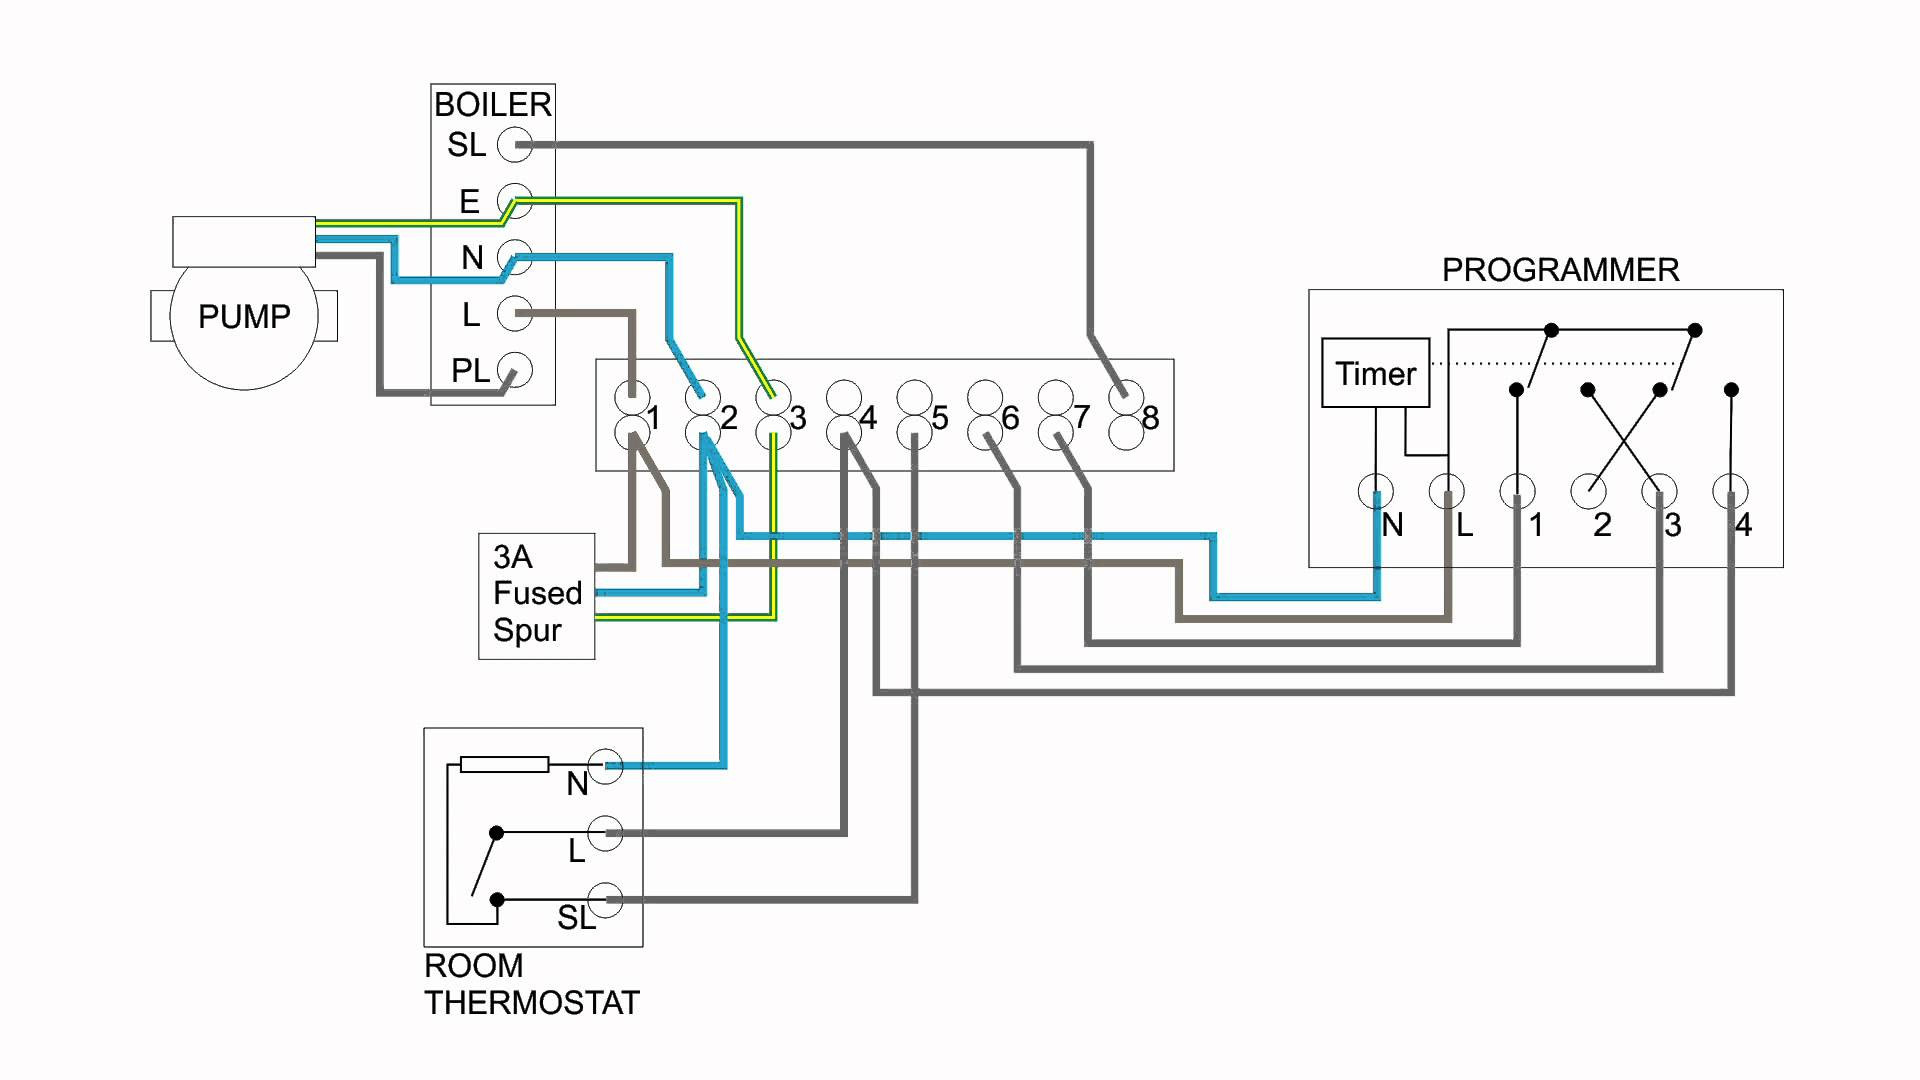 hight resolution of wiring diagram images detail name underfloor heating thermostat wiring diagram hive thermostat wiring